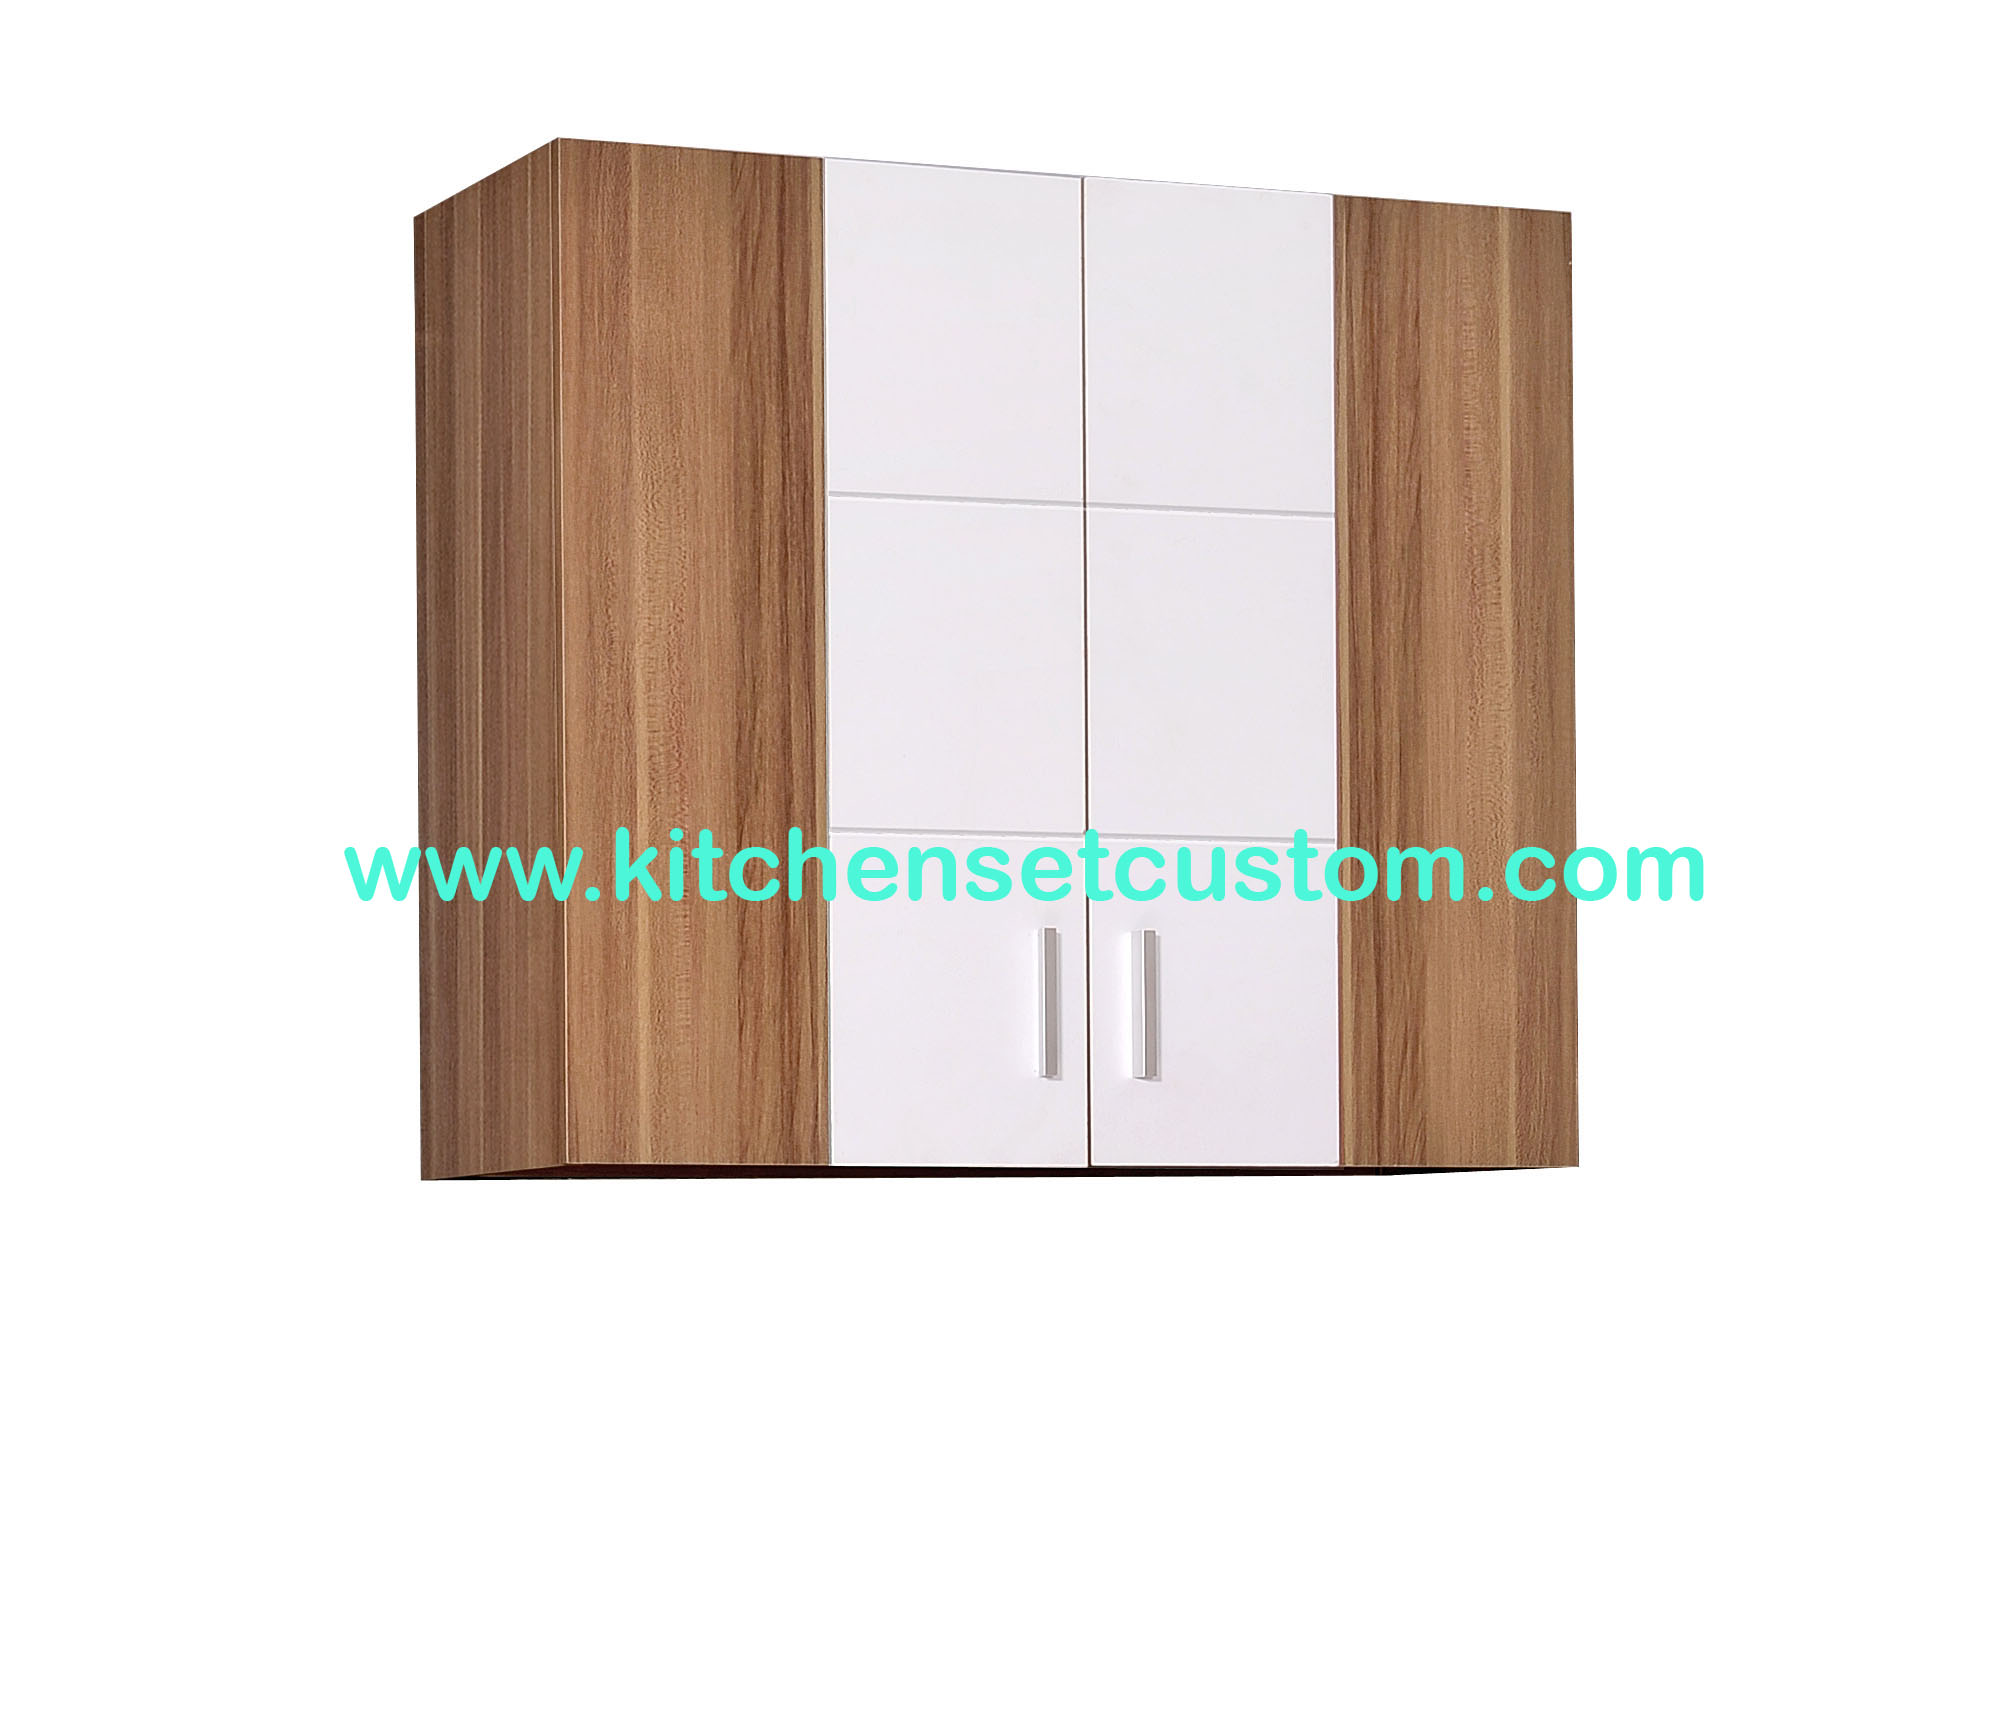 Kitchen Set 2 Pintu KSA 2742 Graver Furniture